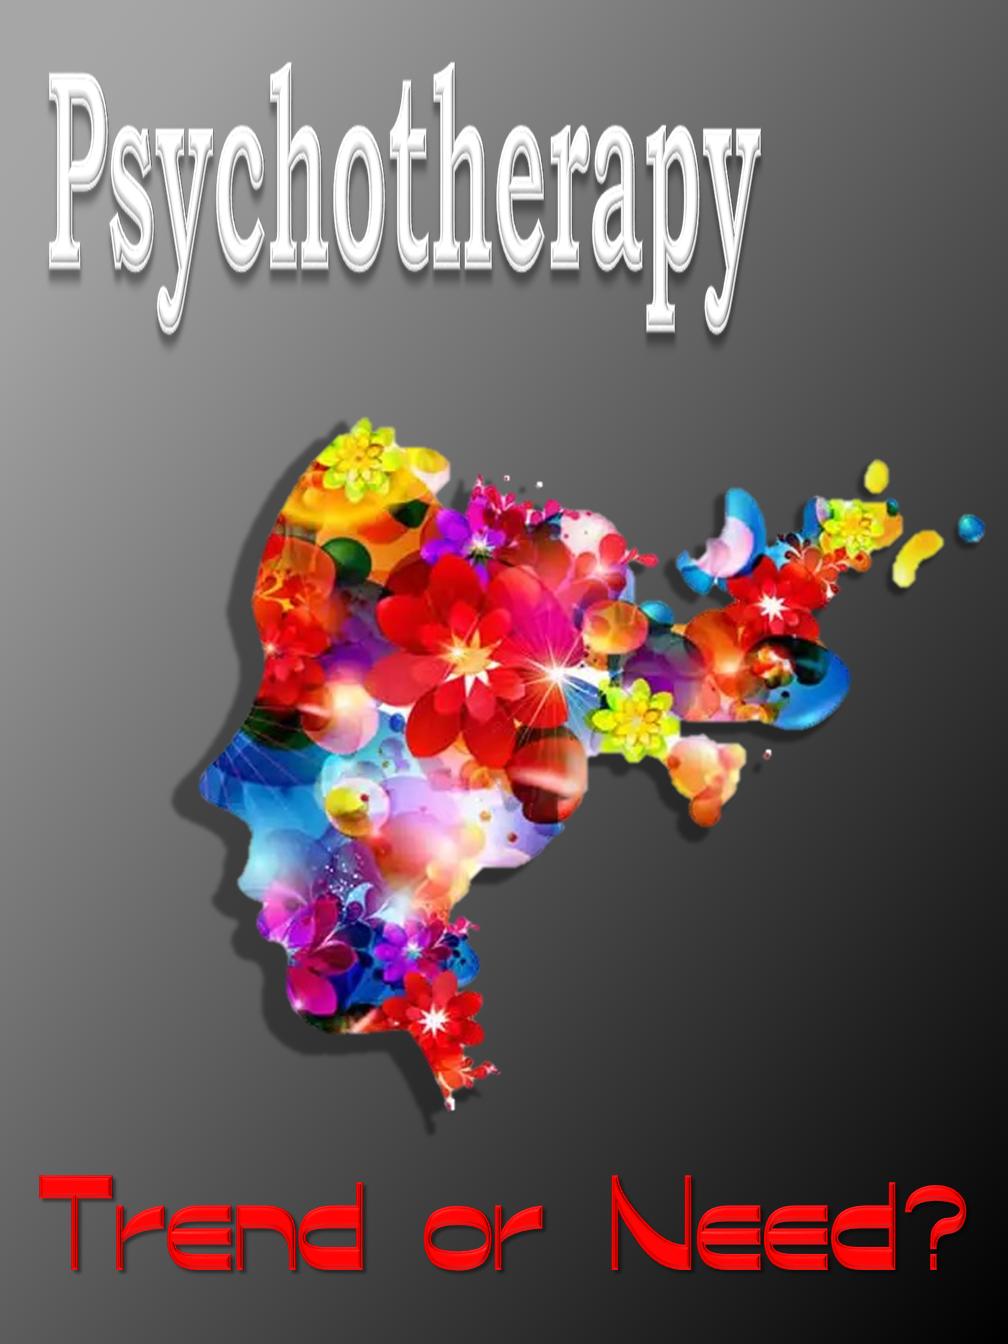 Psychotherapy: Rend or Need